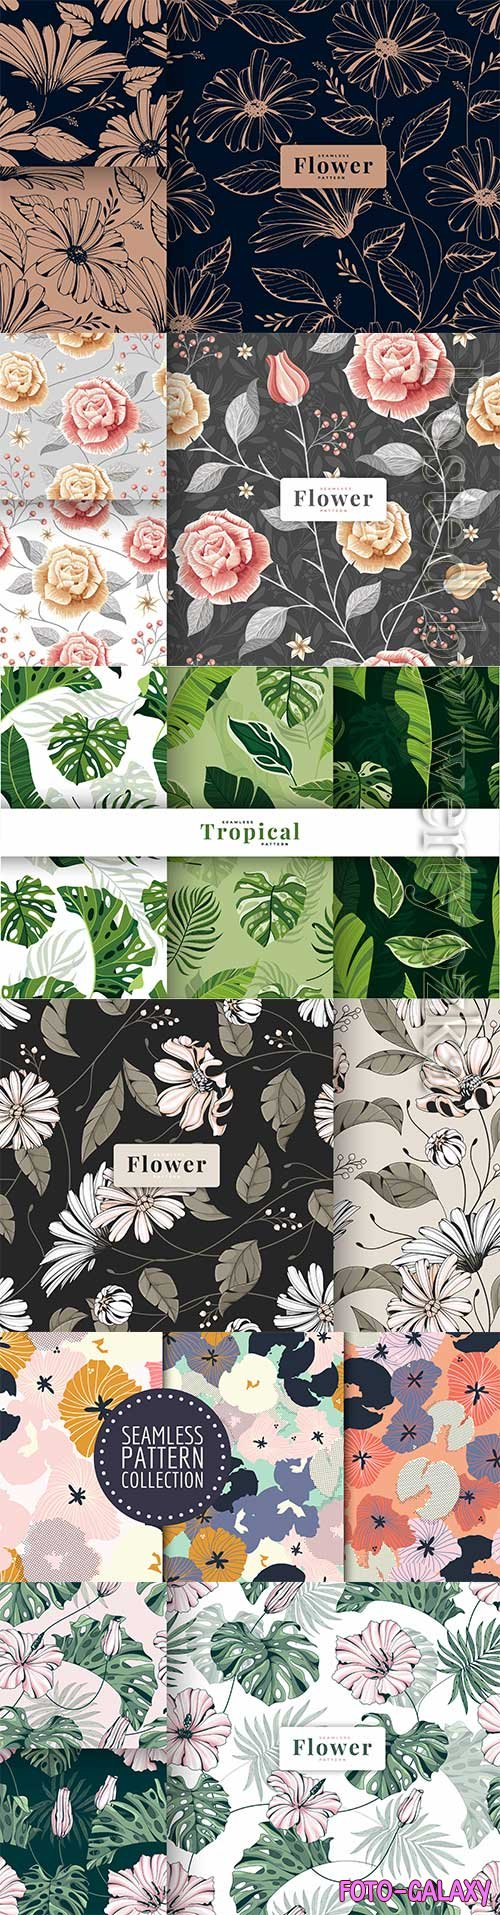 Collection hand drawn vintage floral seamless pattern